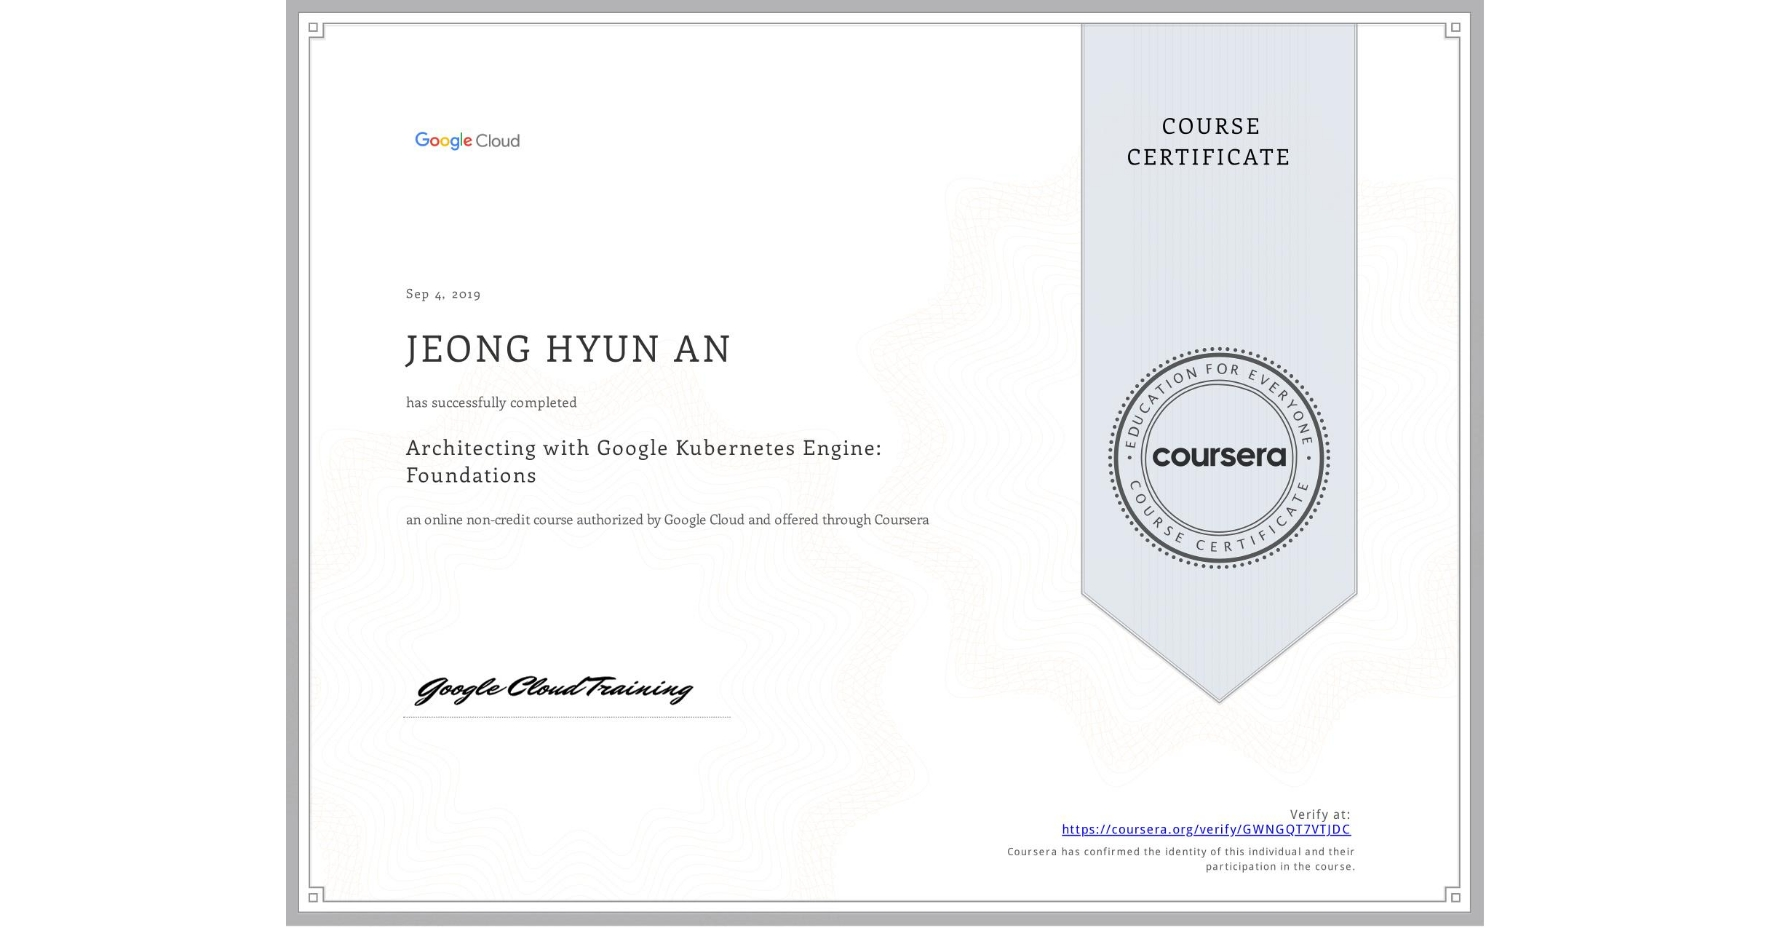 View certificate for JEONG HYUN  AN, Architecting with Google Kubernetes Engine: Foundations, an online non-credit course authorized by Google Cloud and offered through Coursera